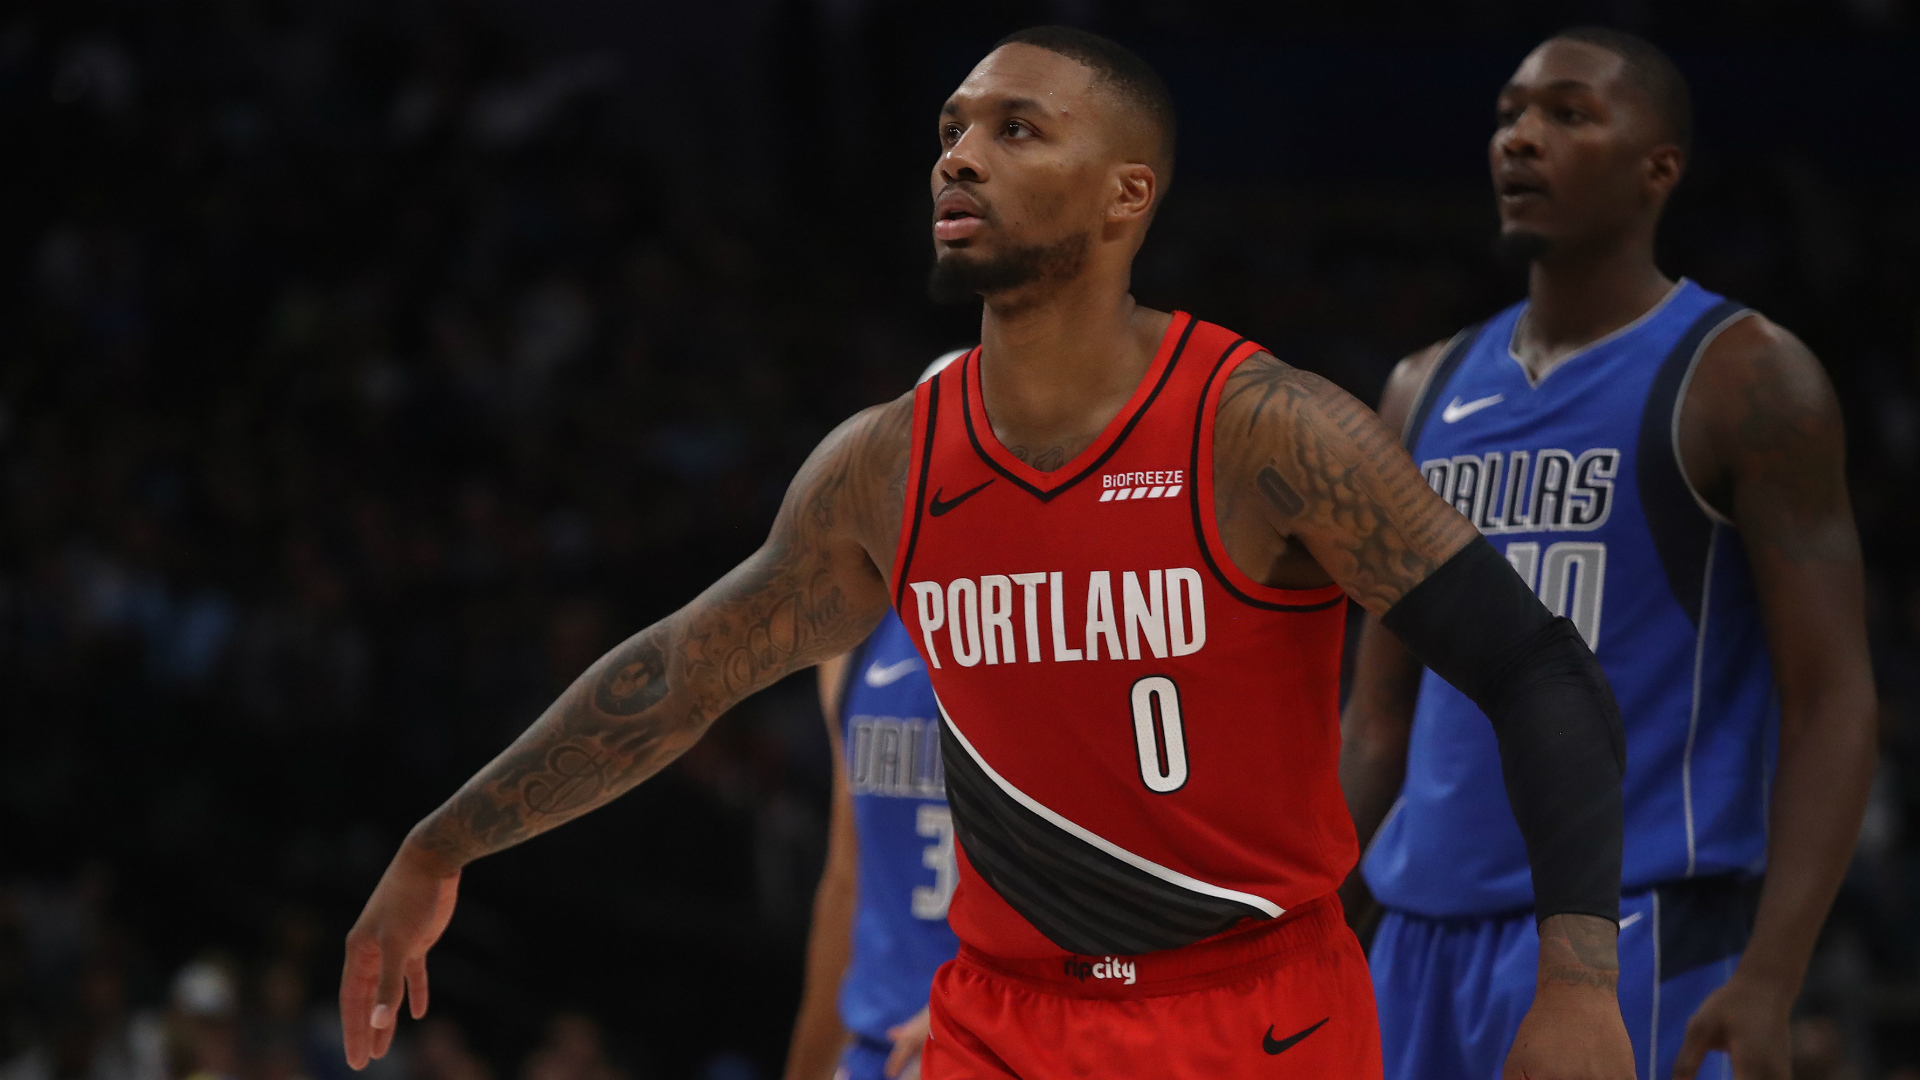 The Trail Blazers' poor run of results continued against the Nets despite Damian Lillard having a night to remember.